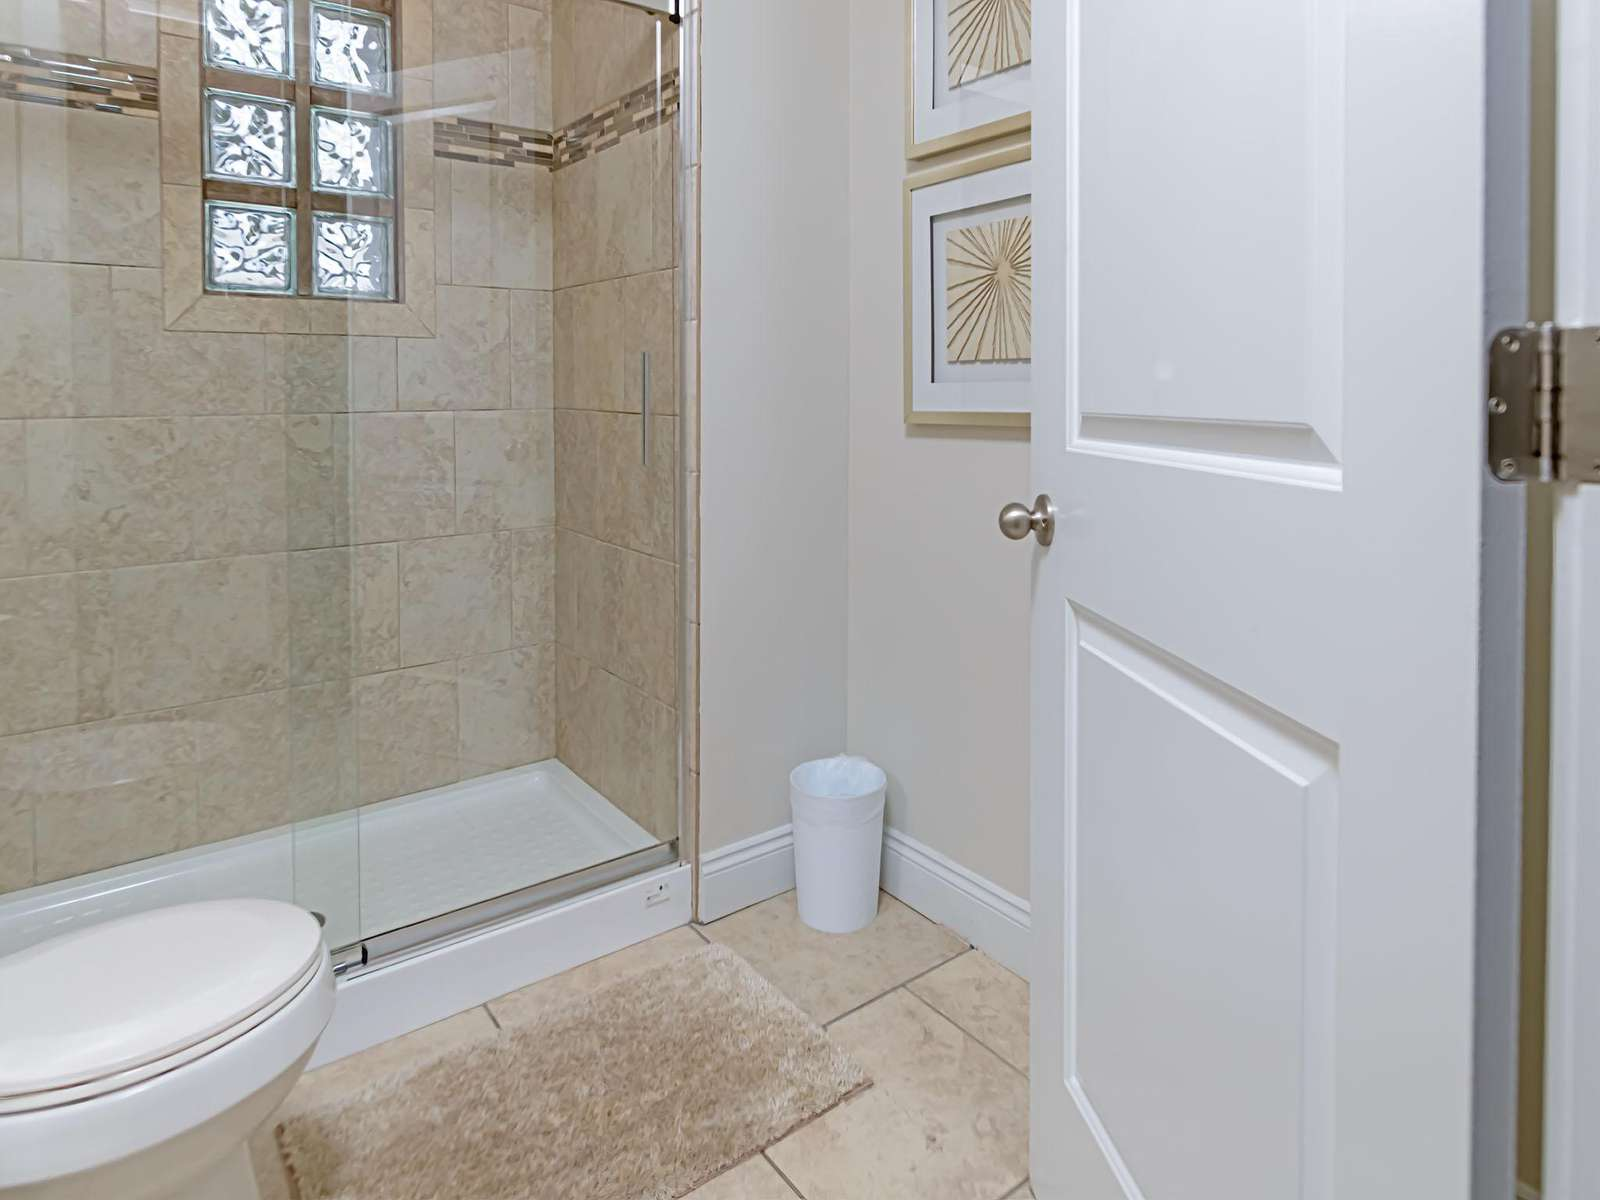 The first full bath downstairs is stocked with linen!